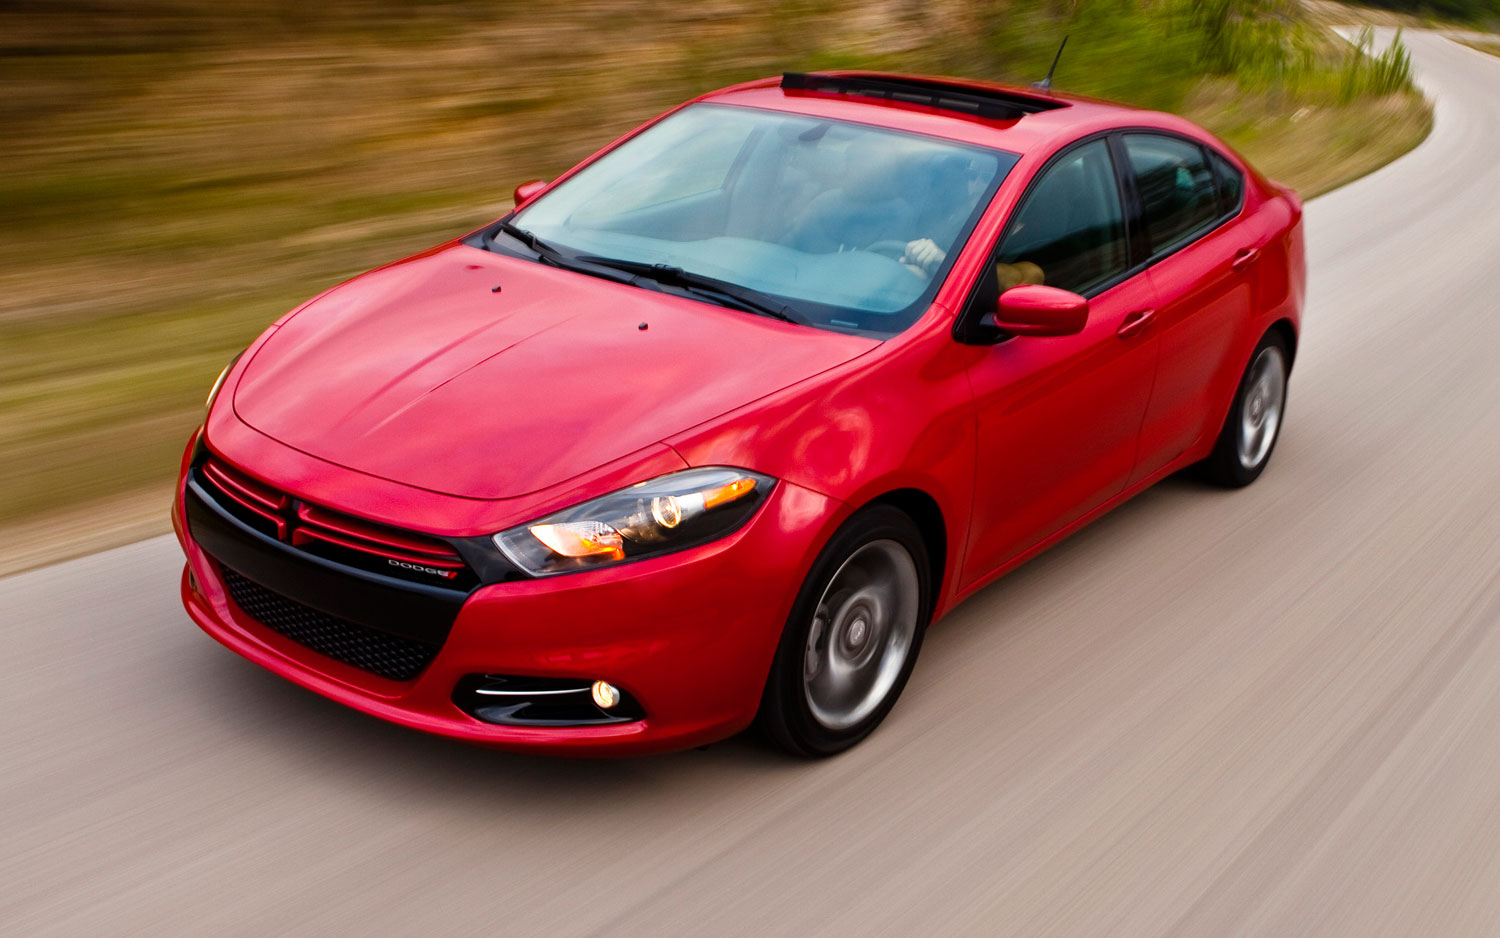 2013 Dodge Dart Front View11